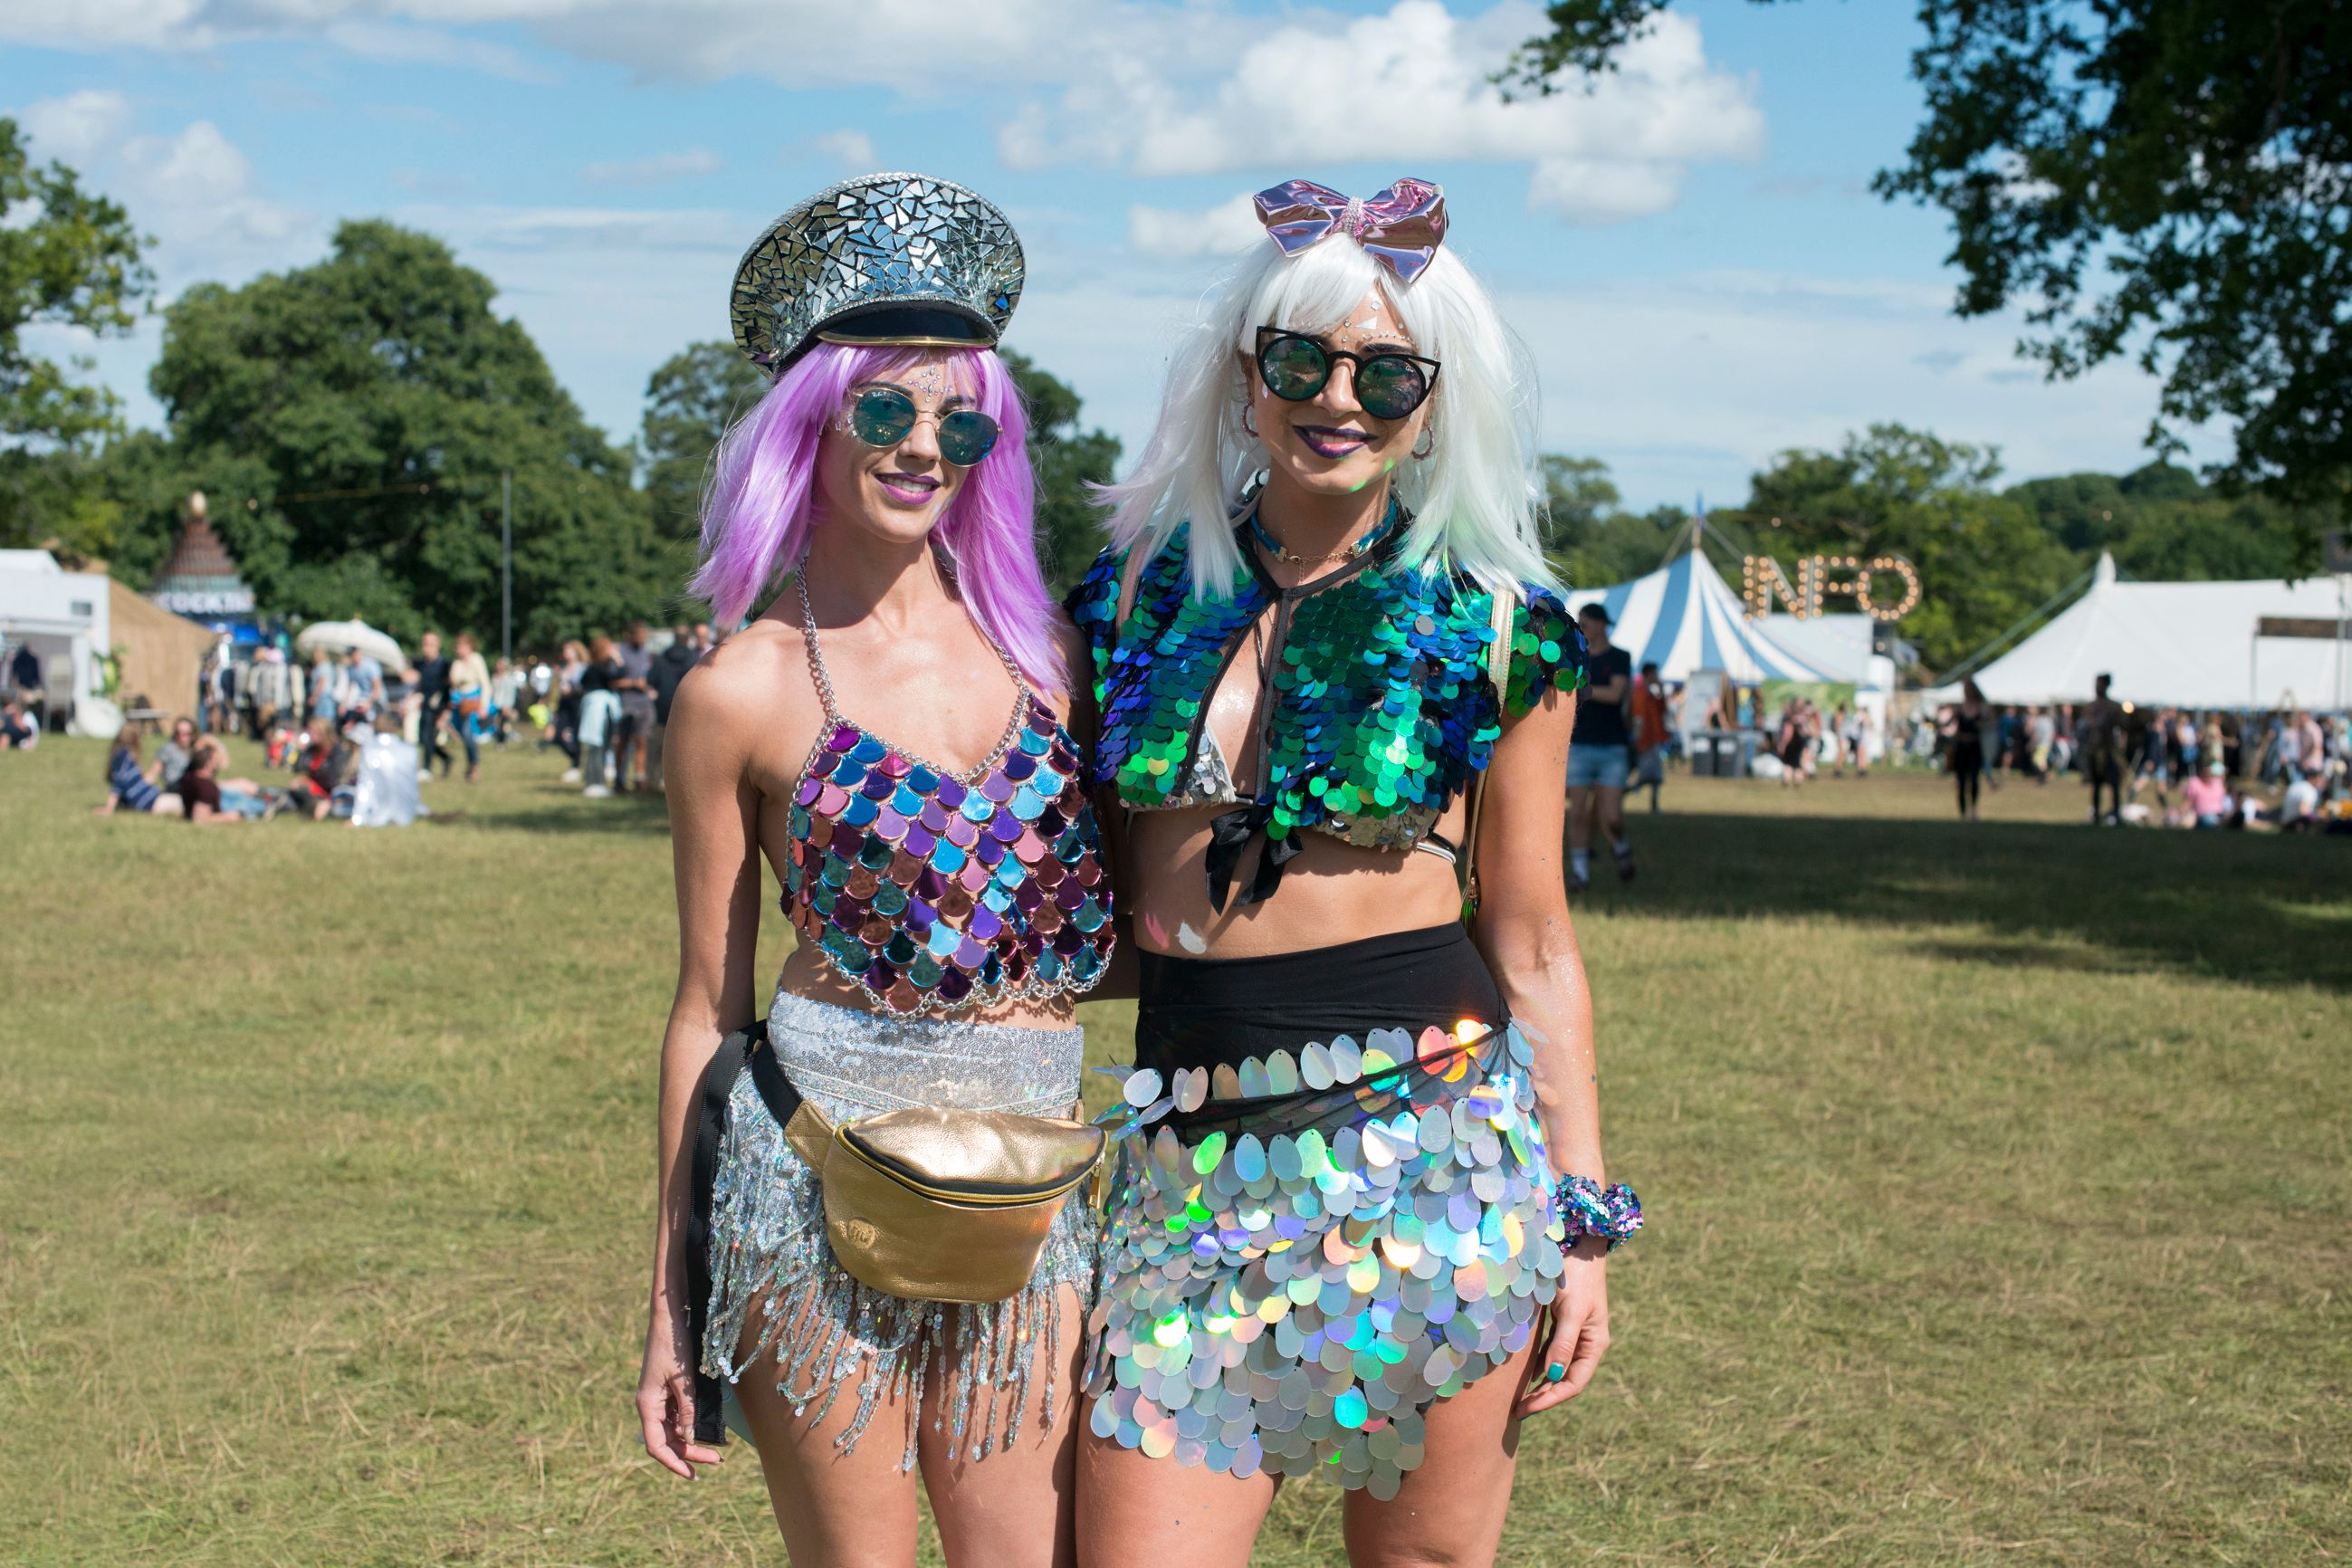 How To Buy Tickets For Wilderness Festival 2018 photo